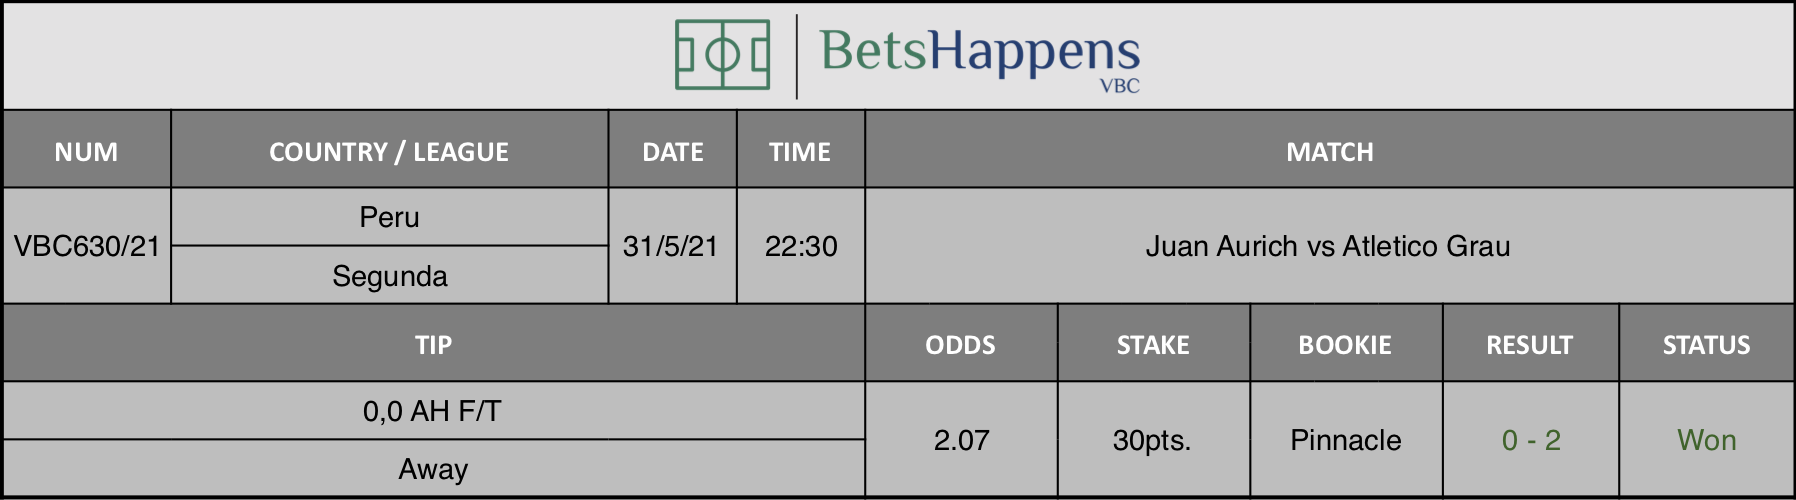 Results of our tip for the Juan Aurich vs Atletico Grau where 0,0 AH F/T  Away is recommended.